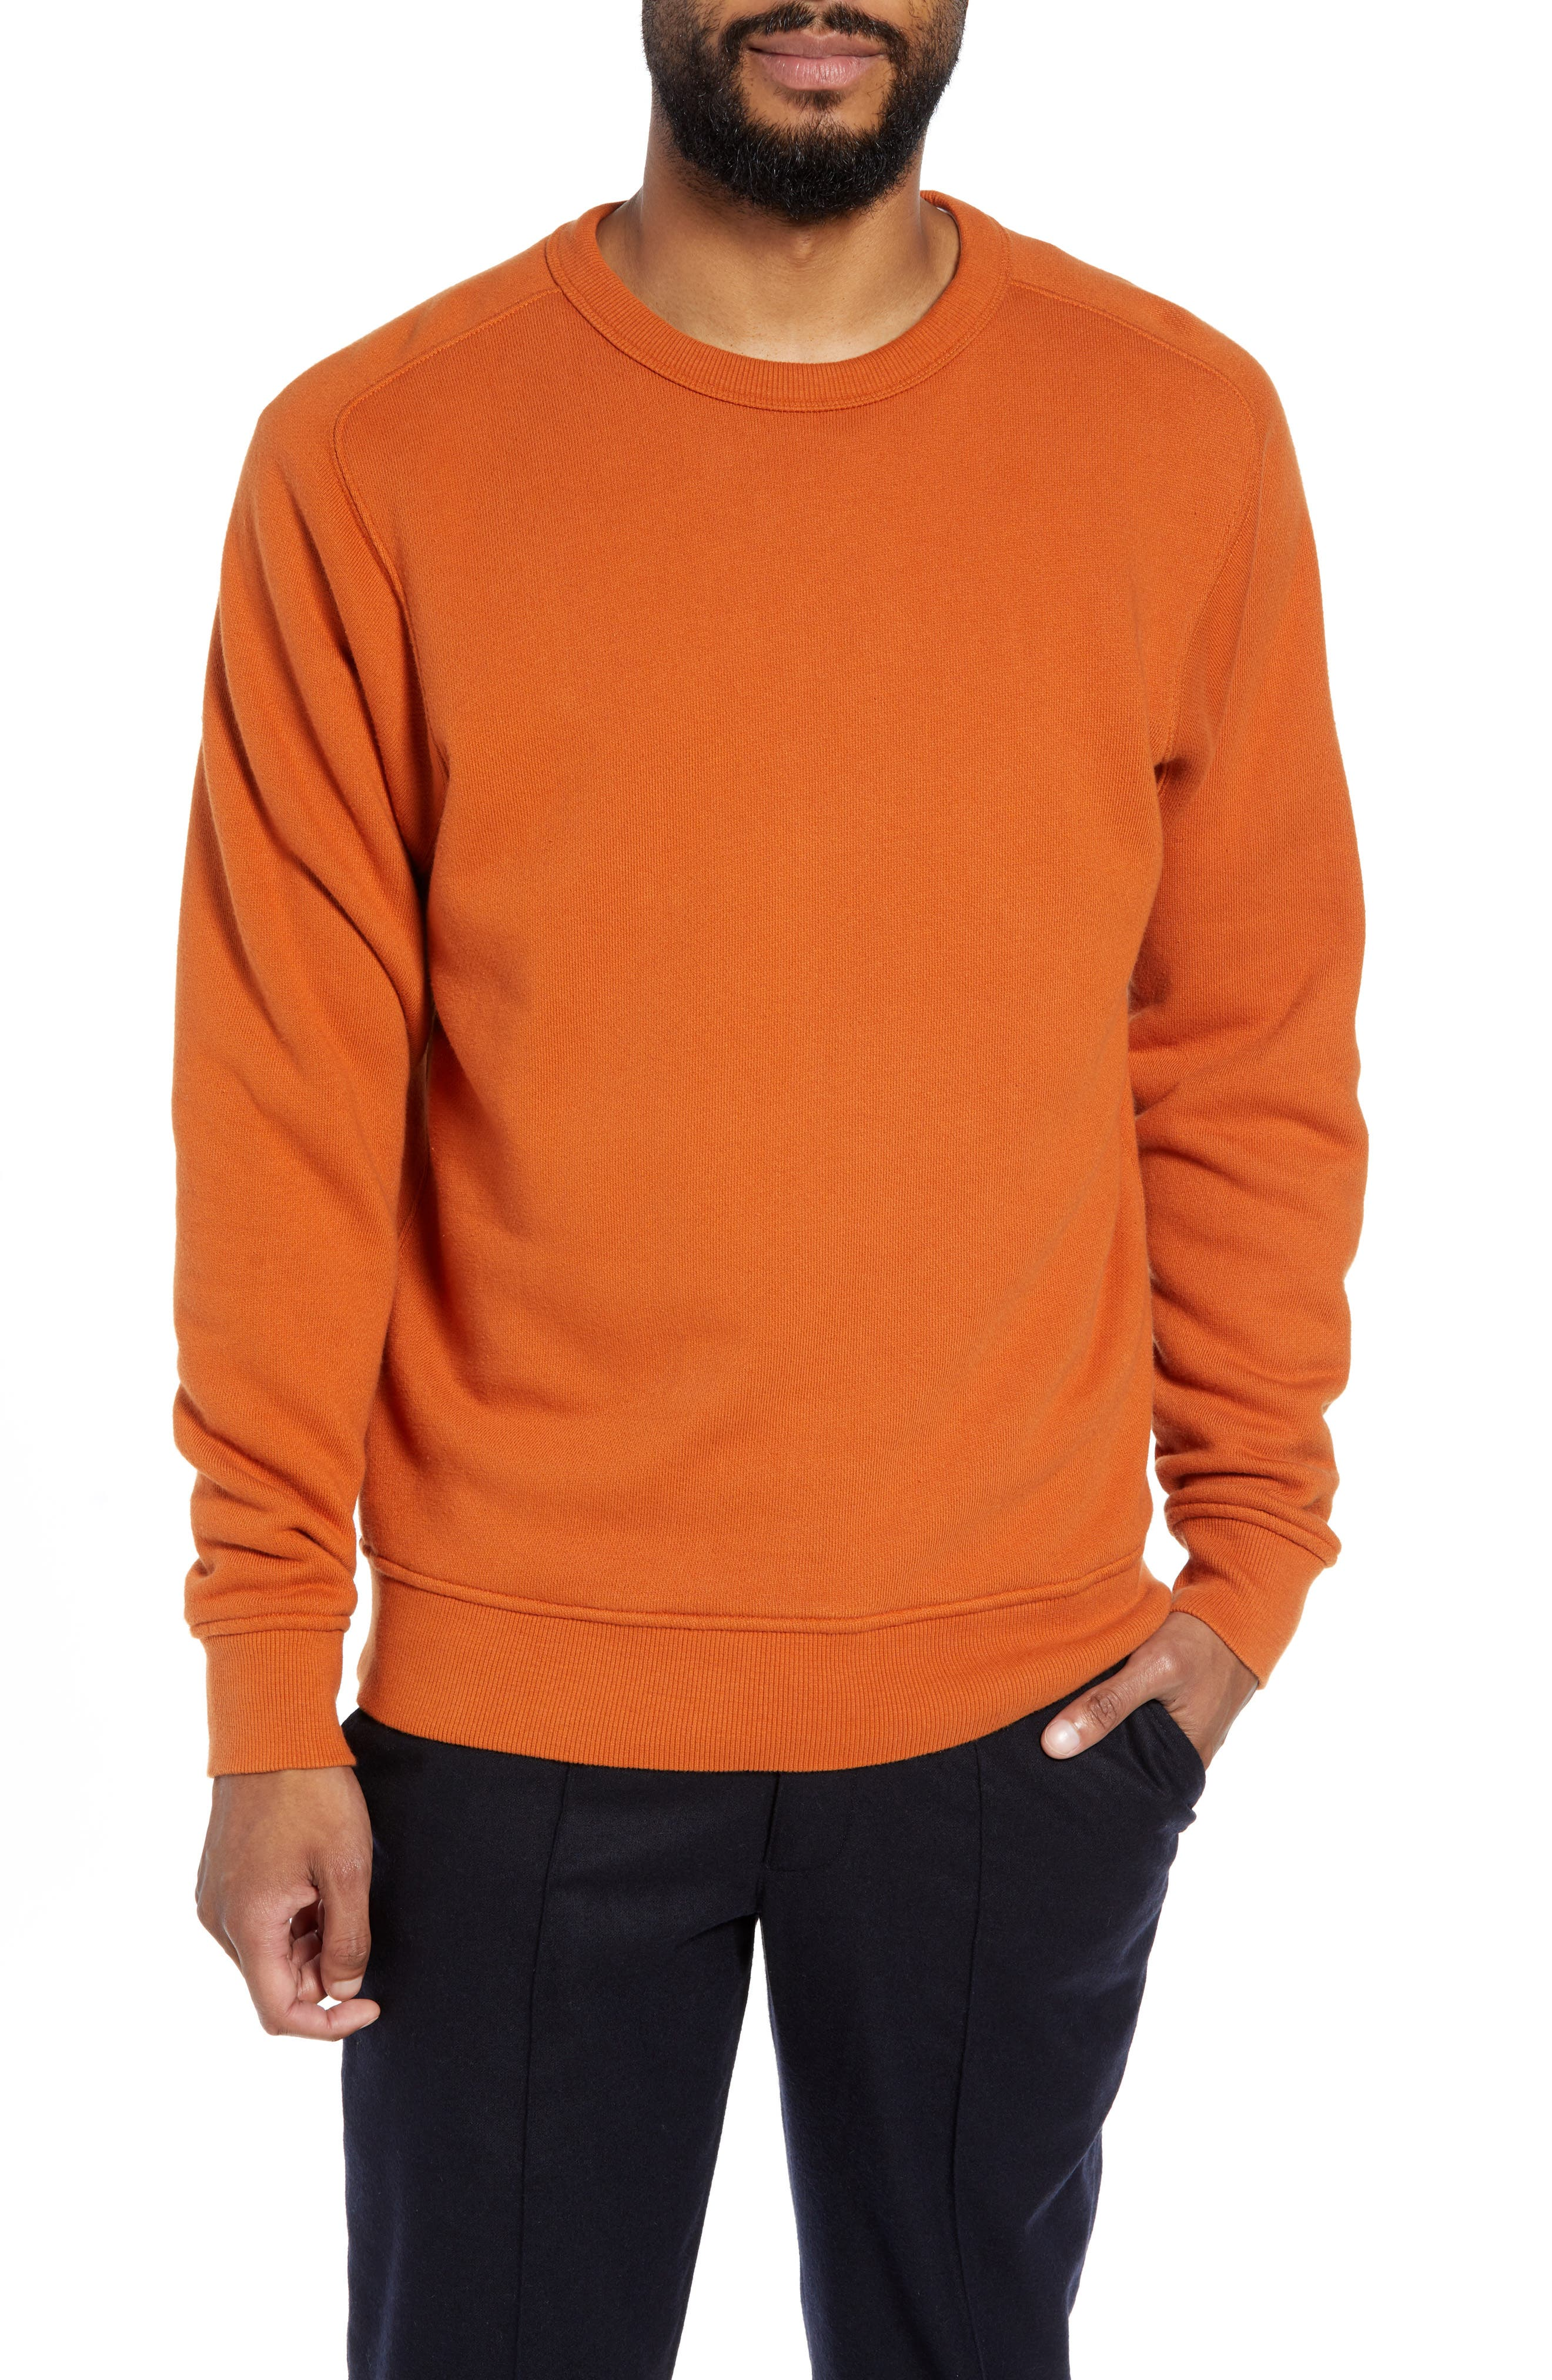 Almost Grown Crewneck Sweatshirt,                             Main thumbnail 1, color,                             RUST